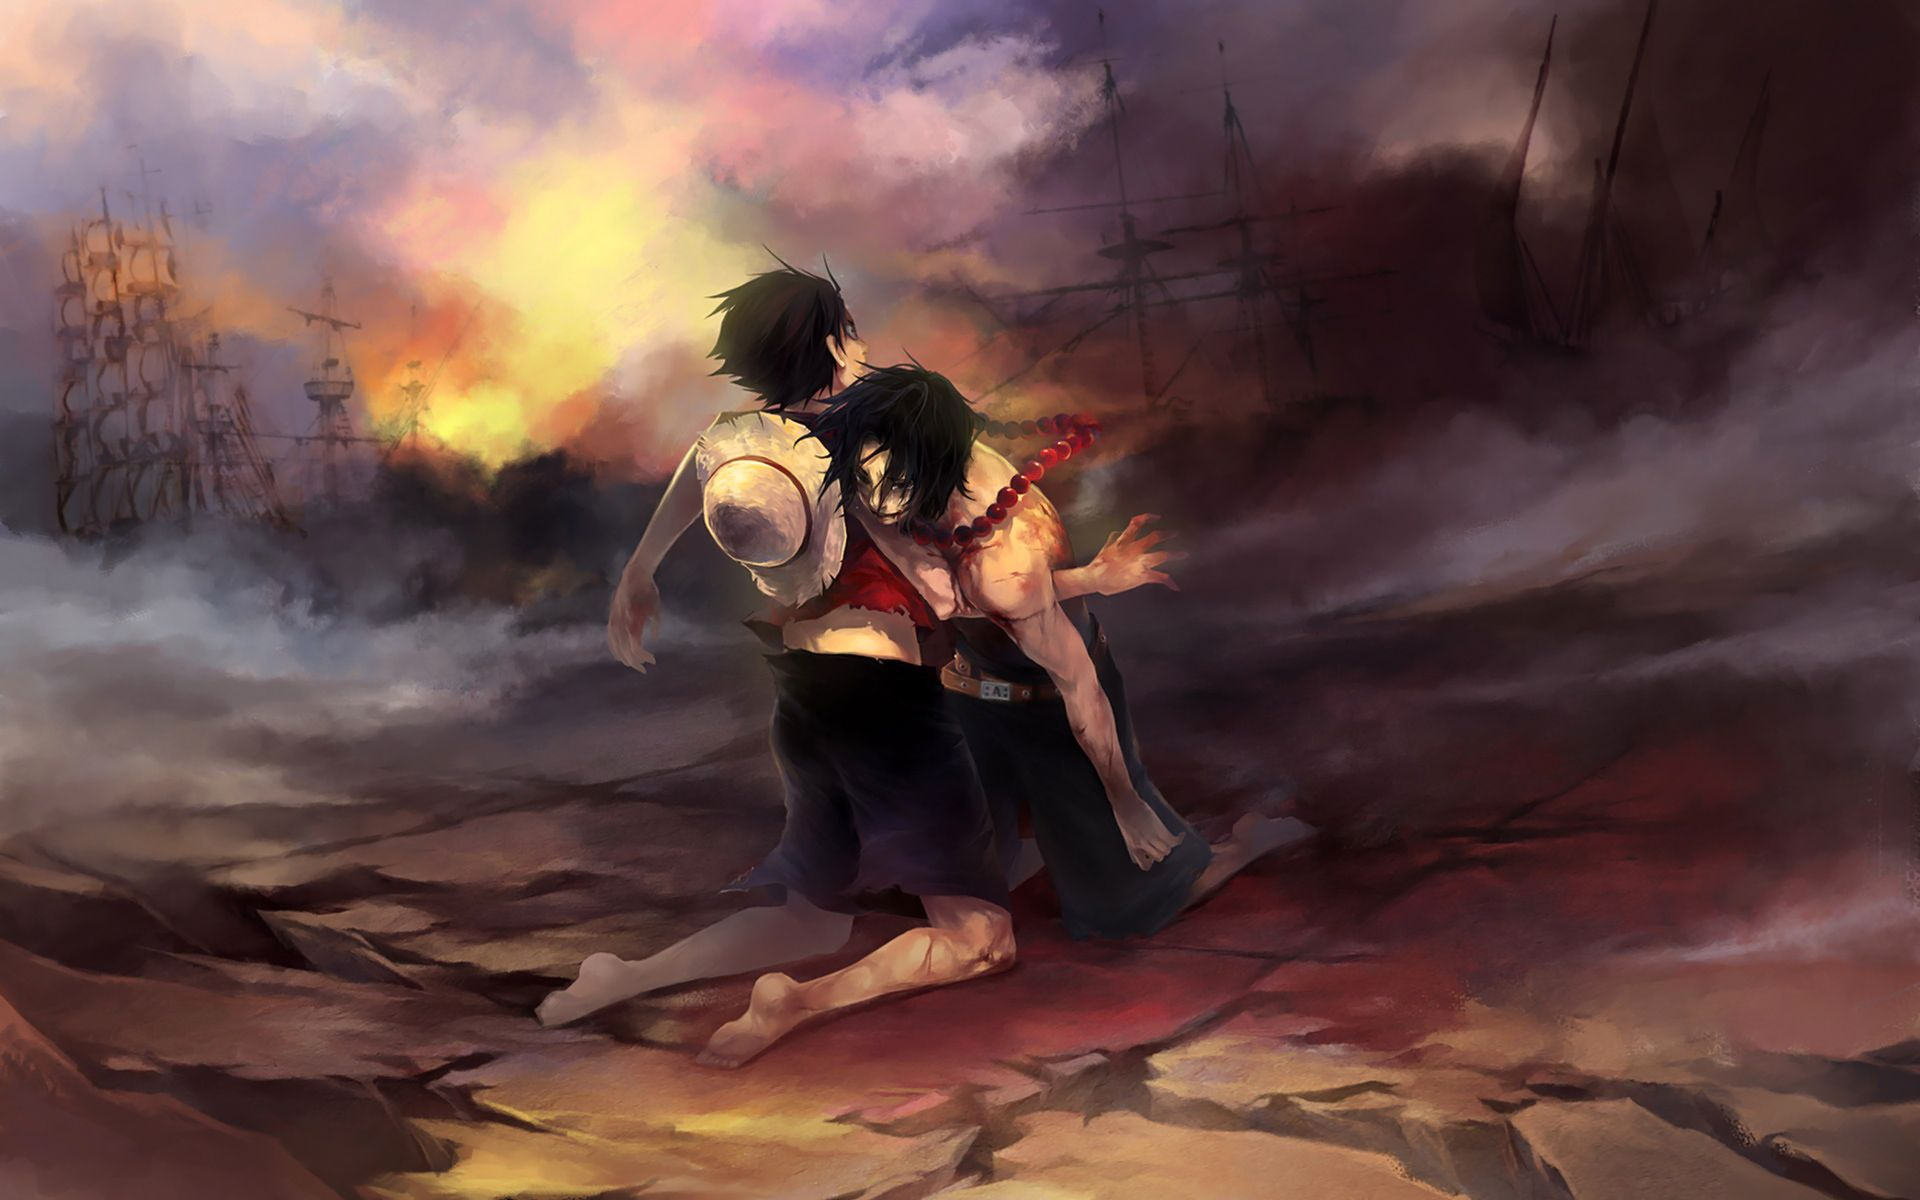 E Piece Luffy Wallpaper D 1024—768 Wallpapers 3D E Piece